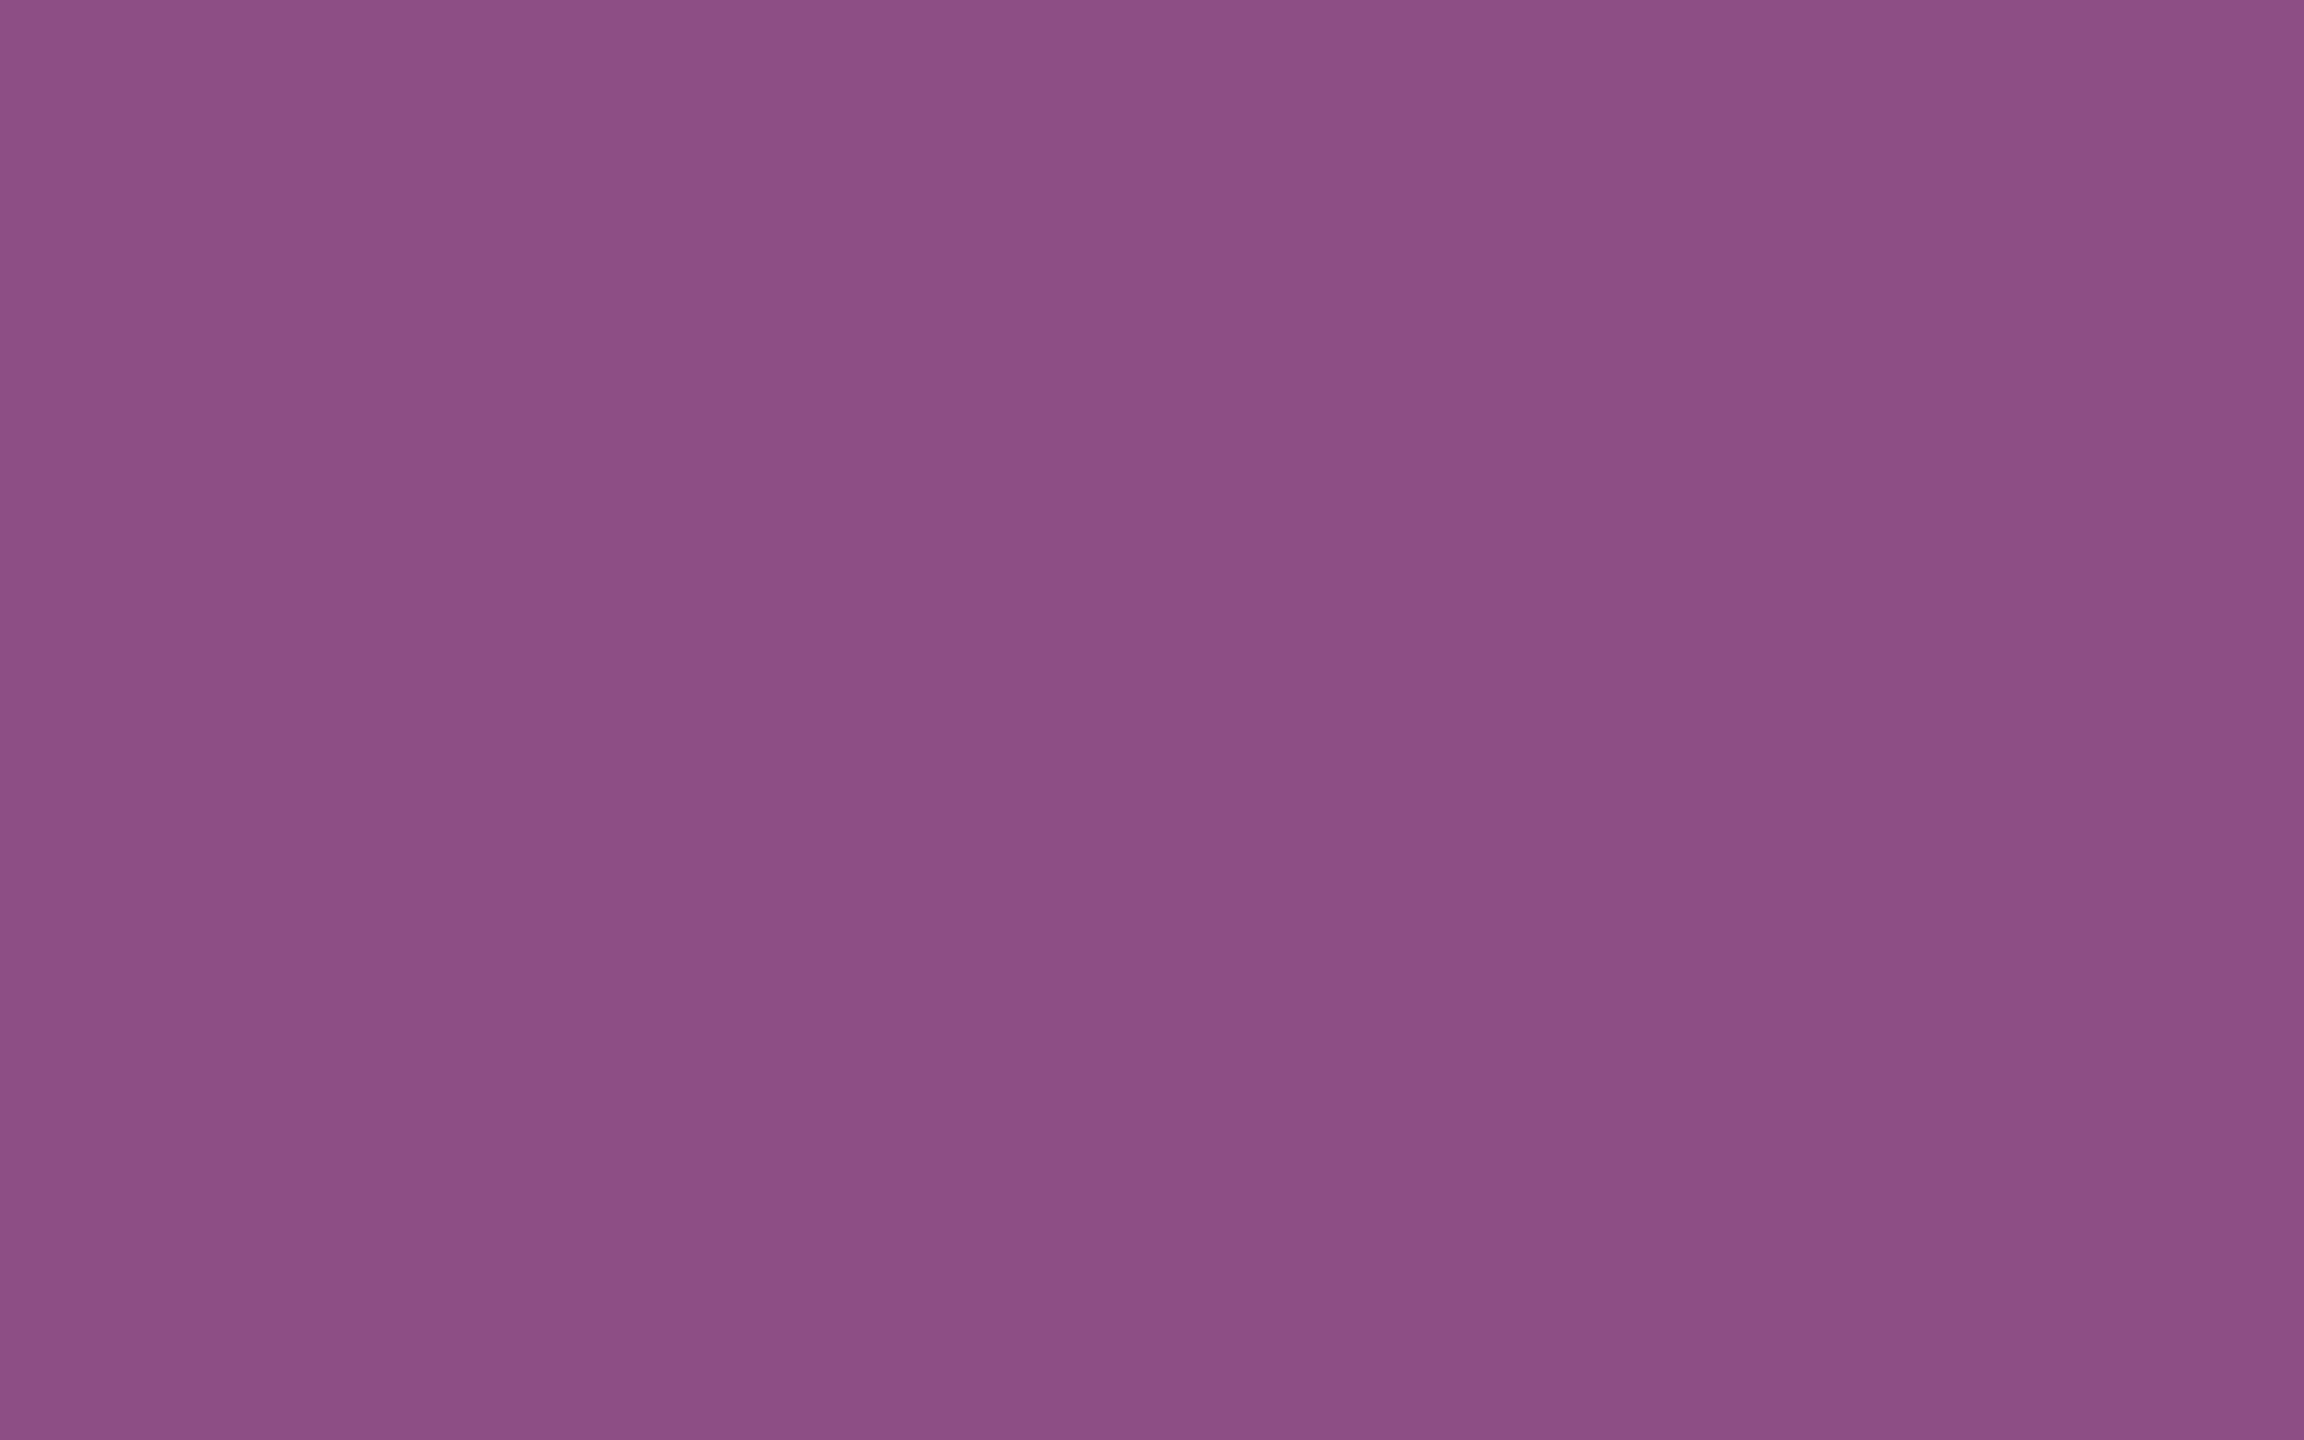 2304x1440 Razzmic Berry Solid Color Background